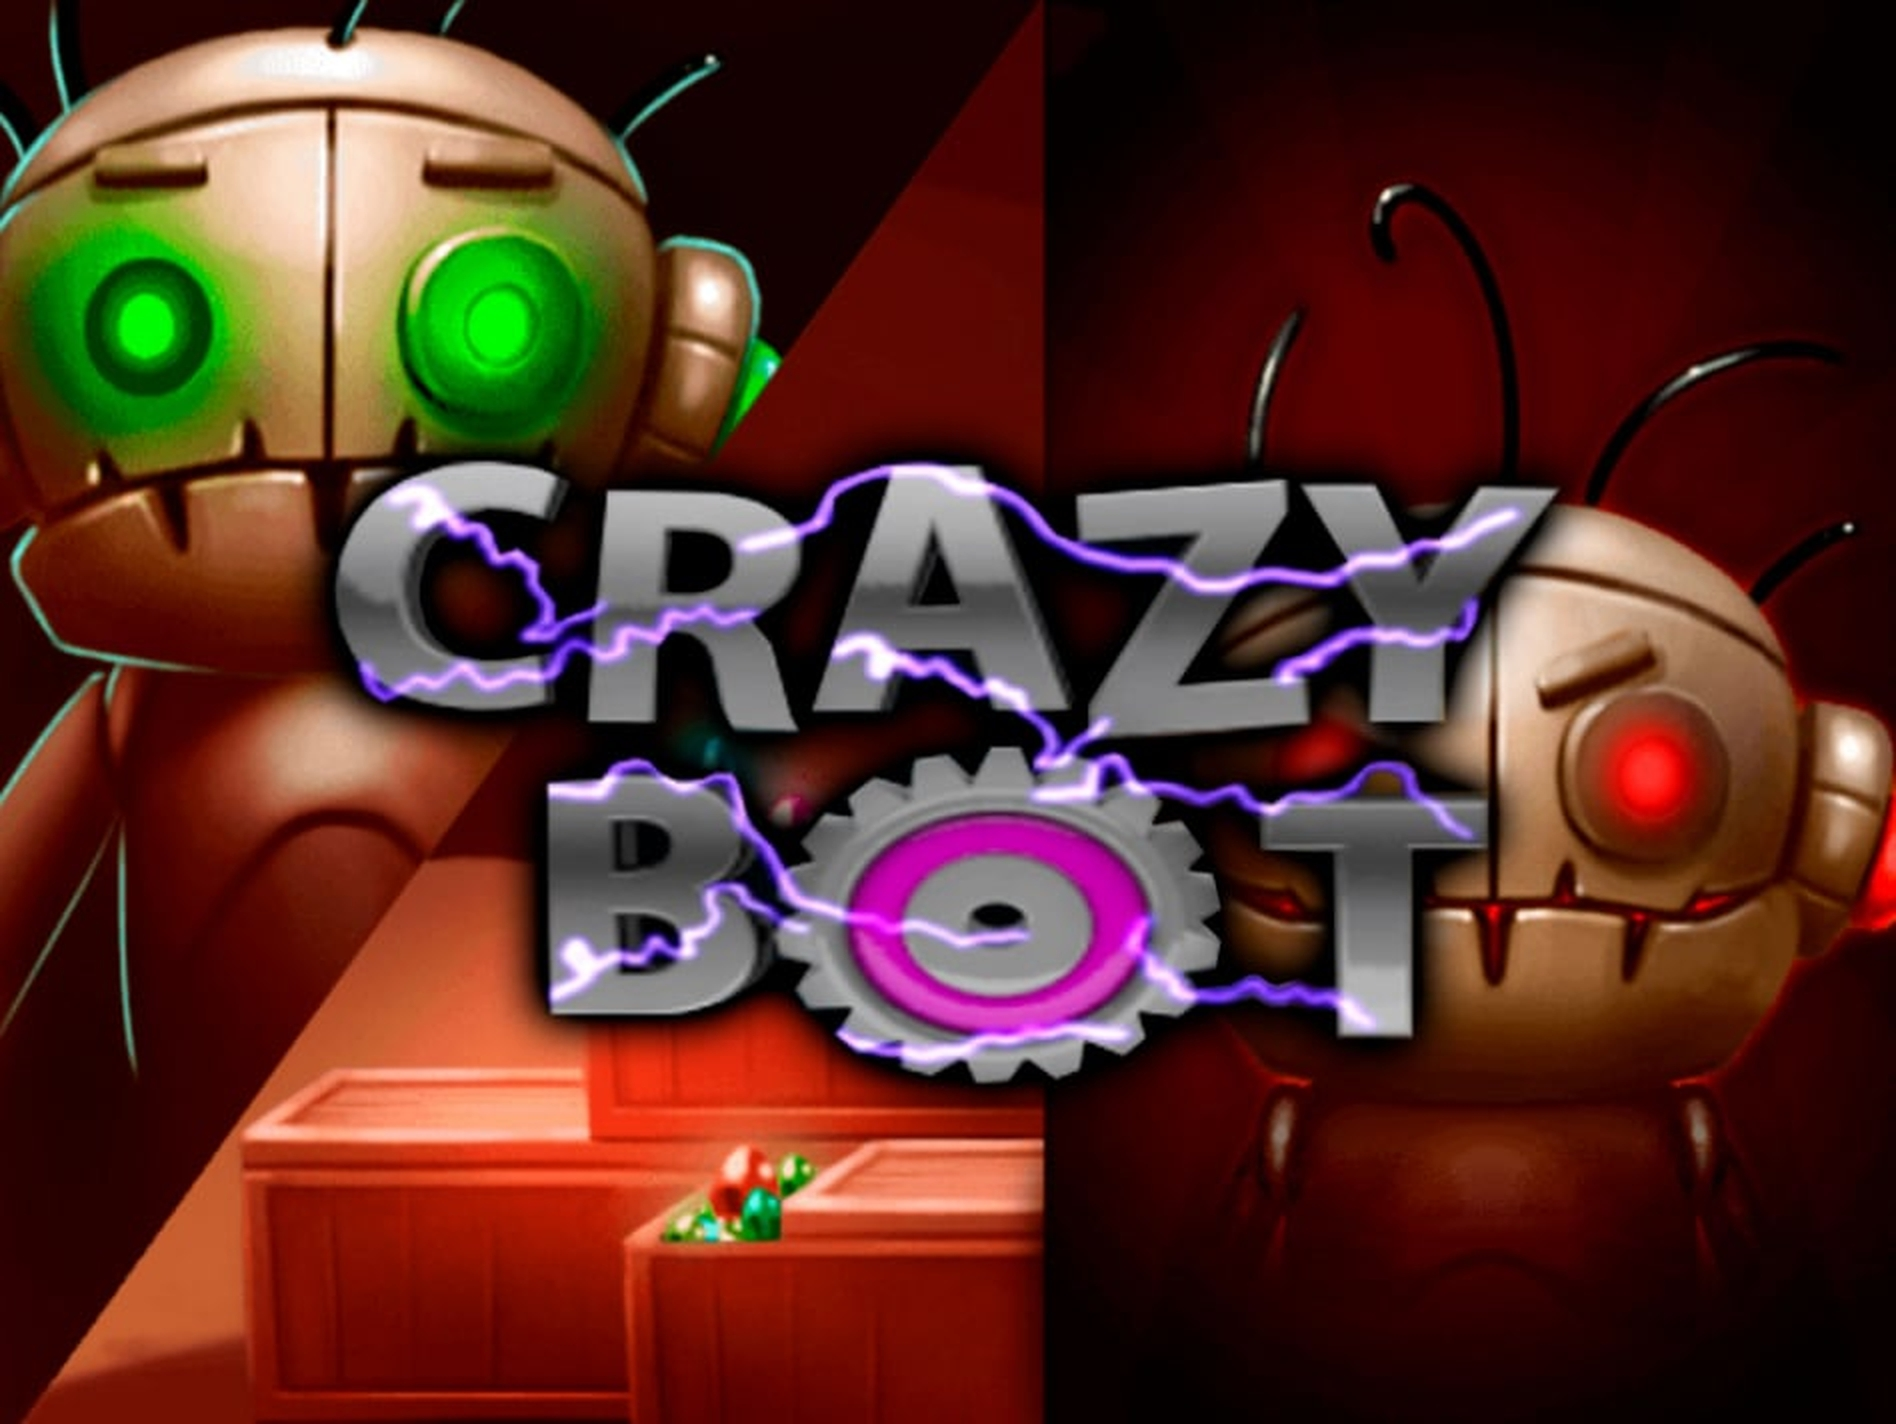 The Crazy Bot Online Slot Demo Game by Fugaso